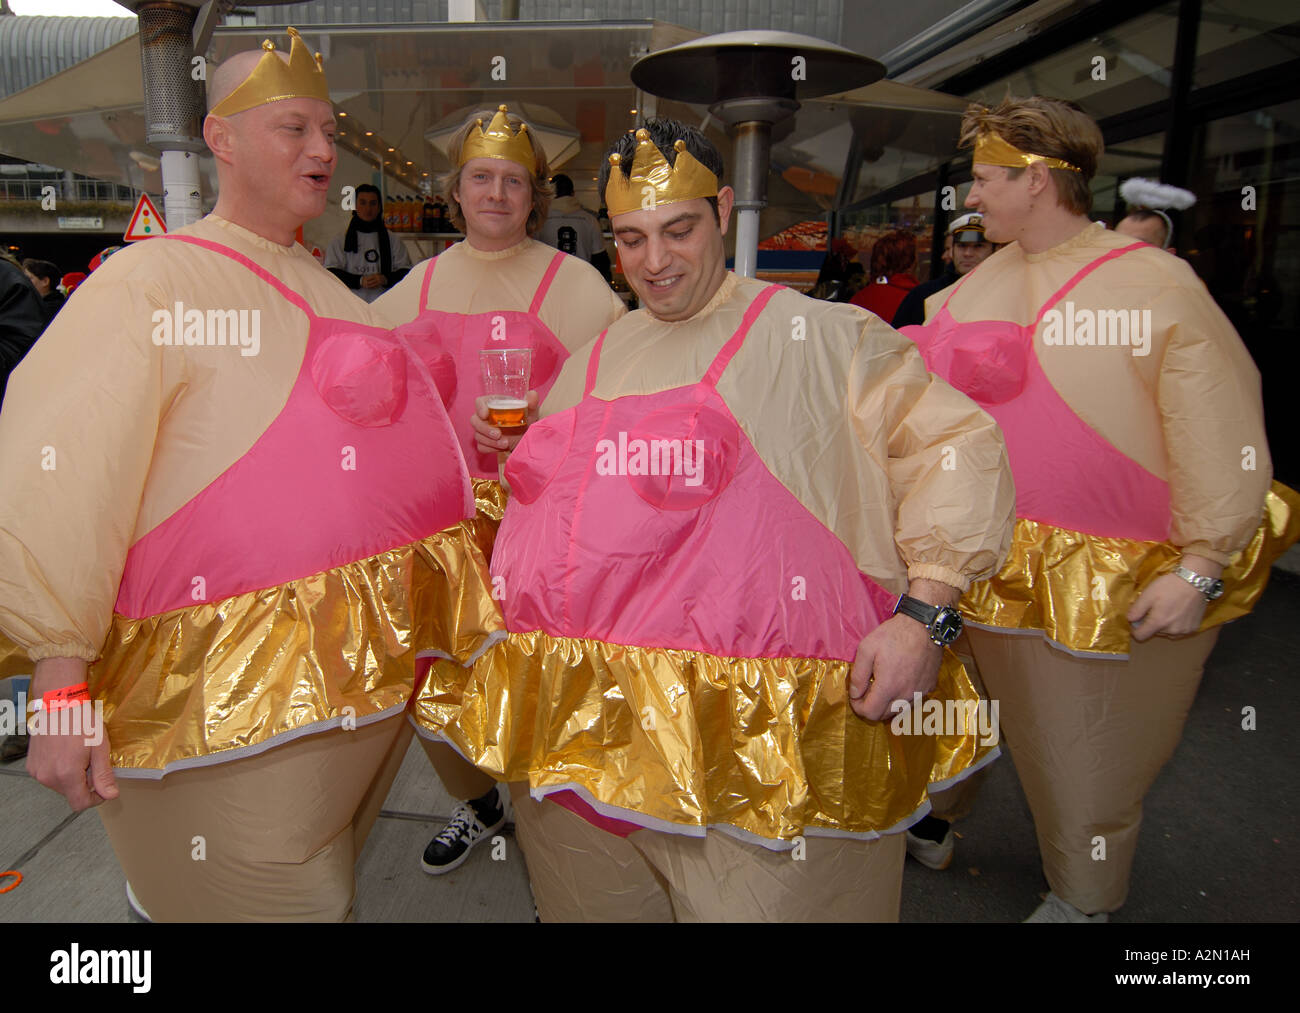 Men in fancy dress costumes at carnival, Germany Stock Photo ...